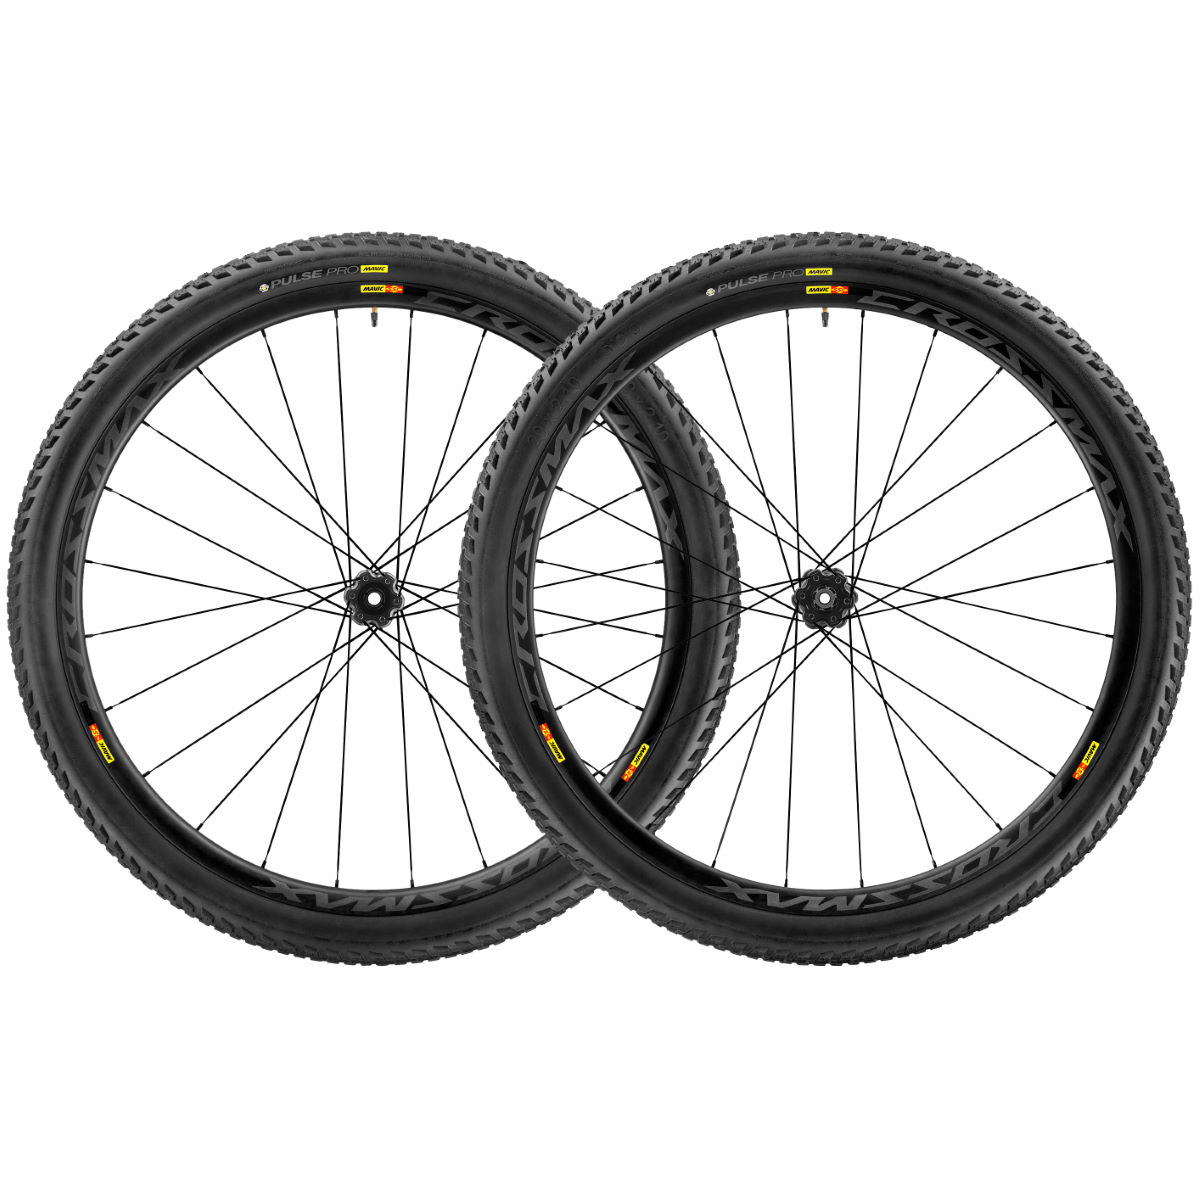 "Wheel set Mavic Crossmax Pro Carbon 29 ""(WTS, Shimano) - Competition wheels"